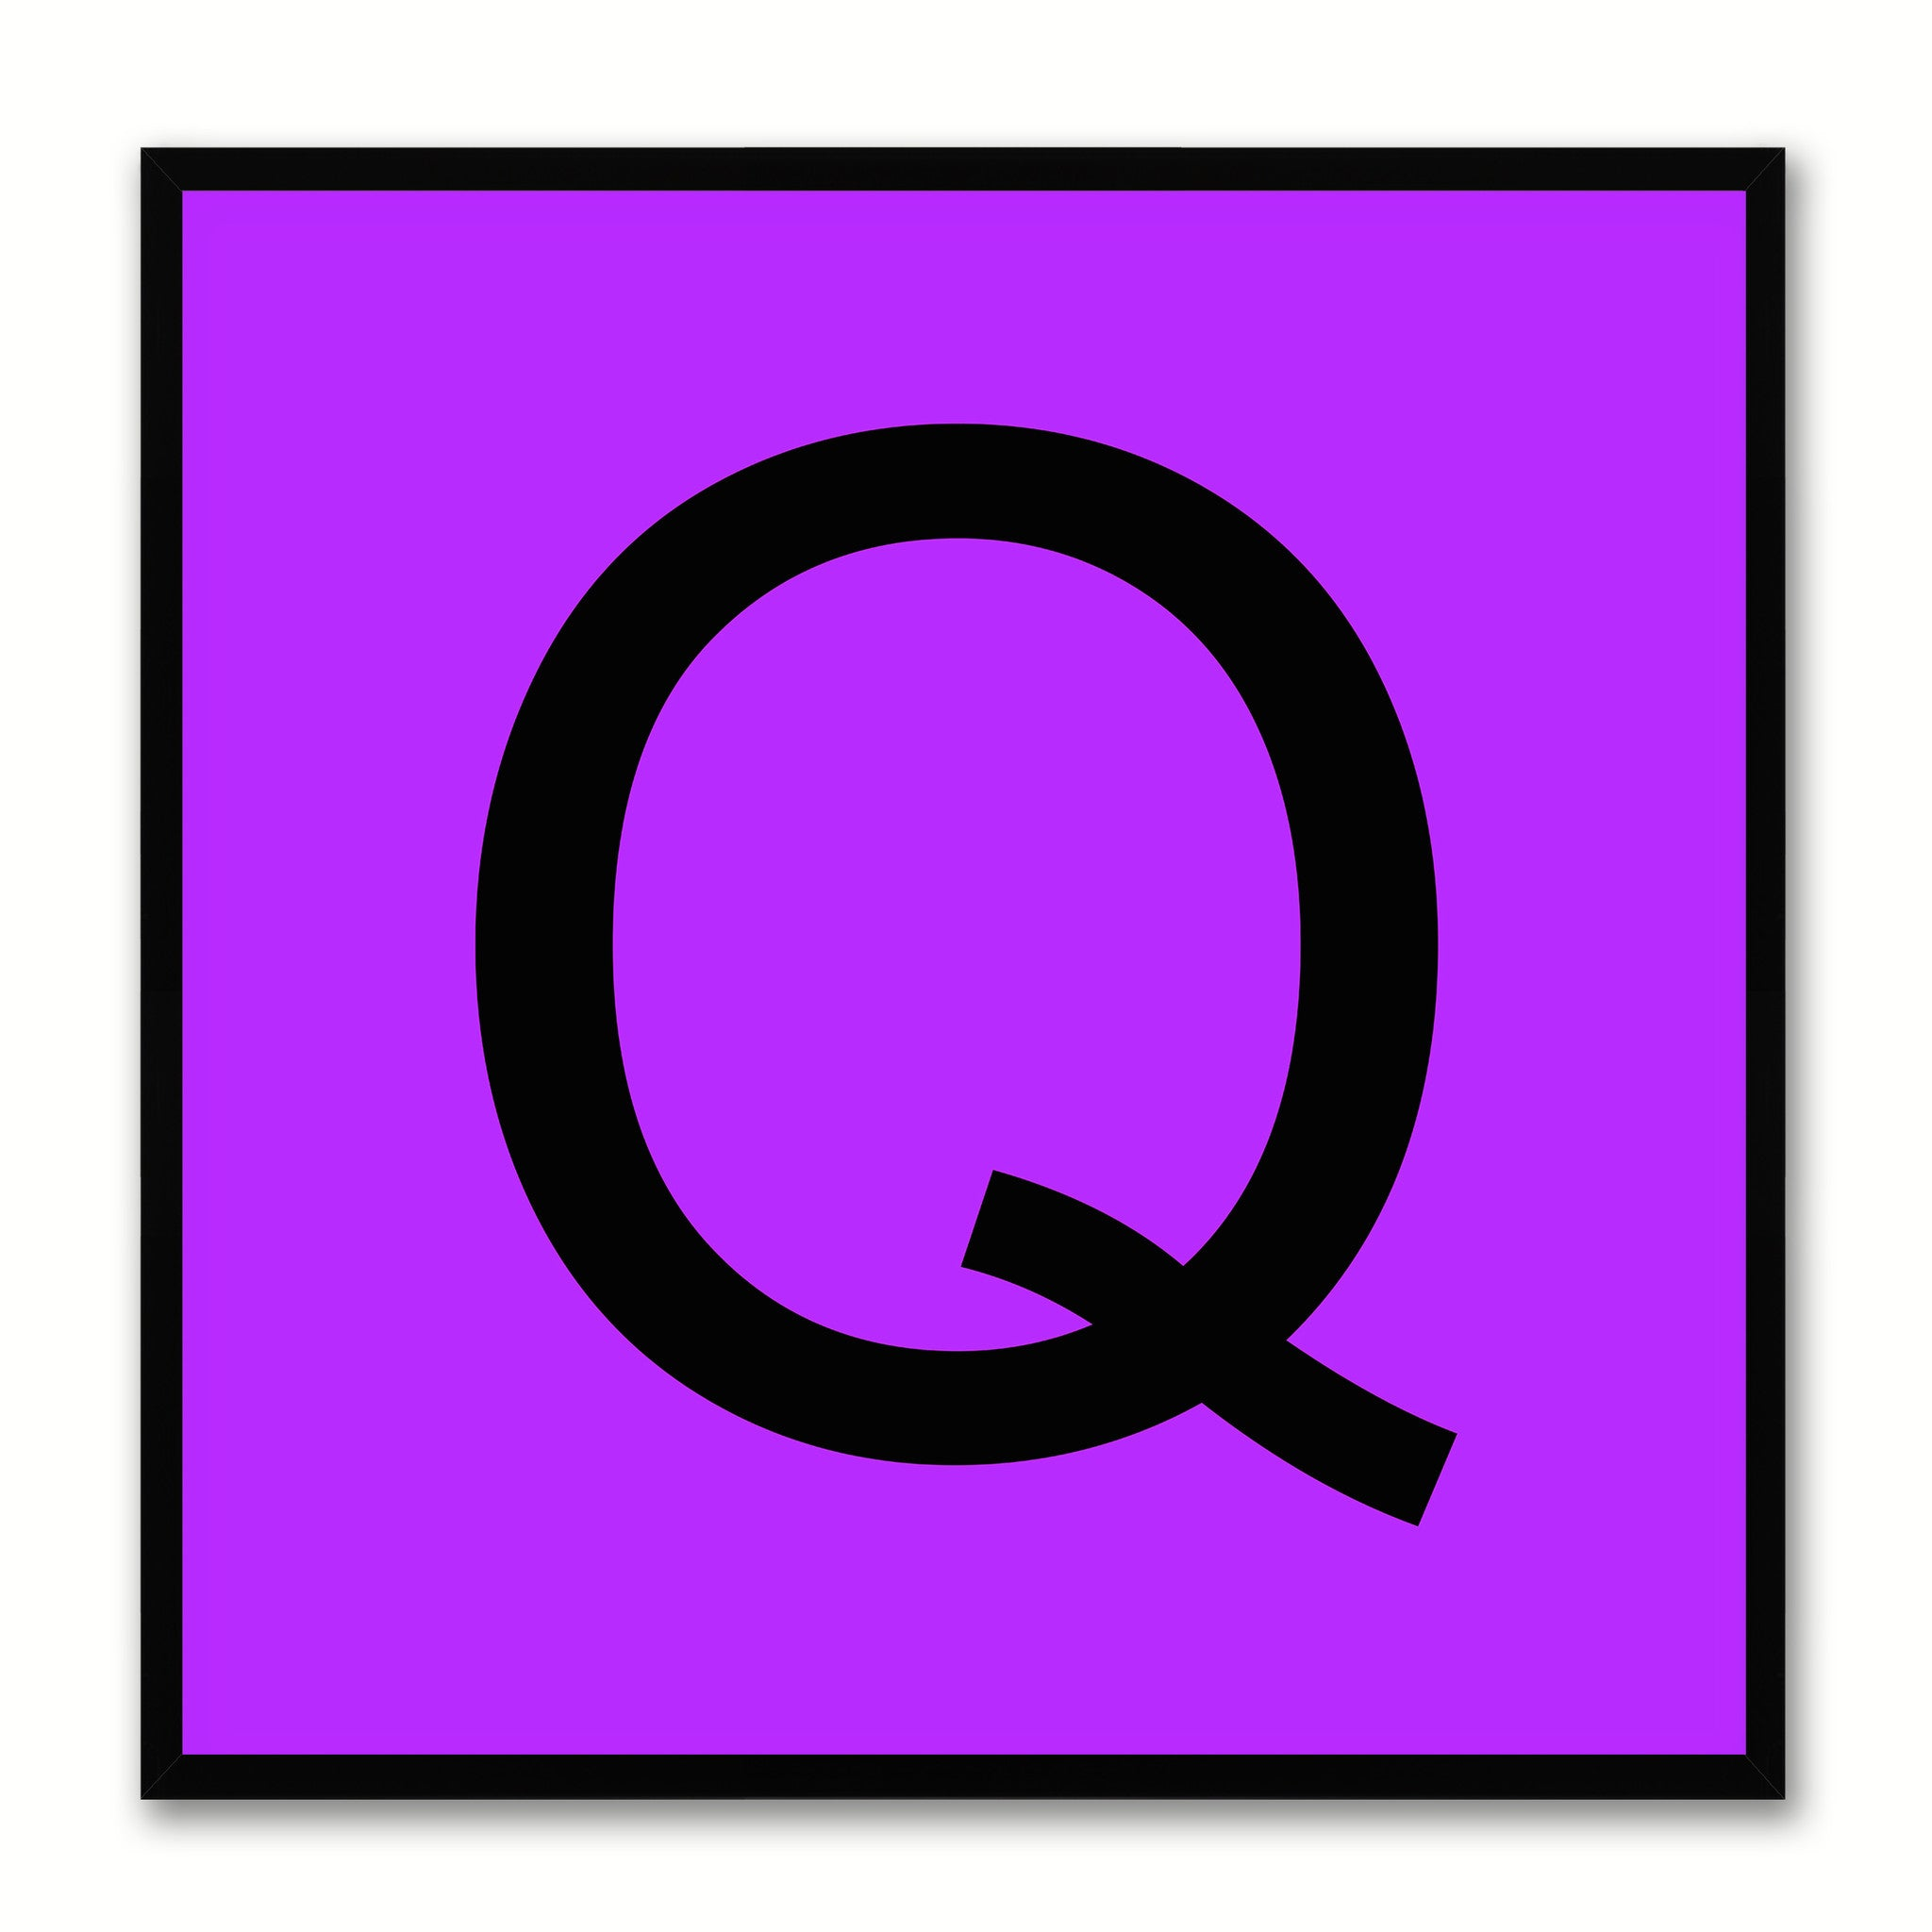 Alphabet Q Purple Canvas Print Black Frame Kids Bedroom Wall Décor Home Art